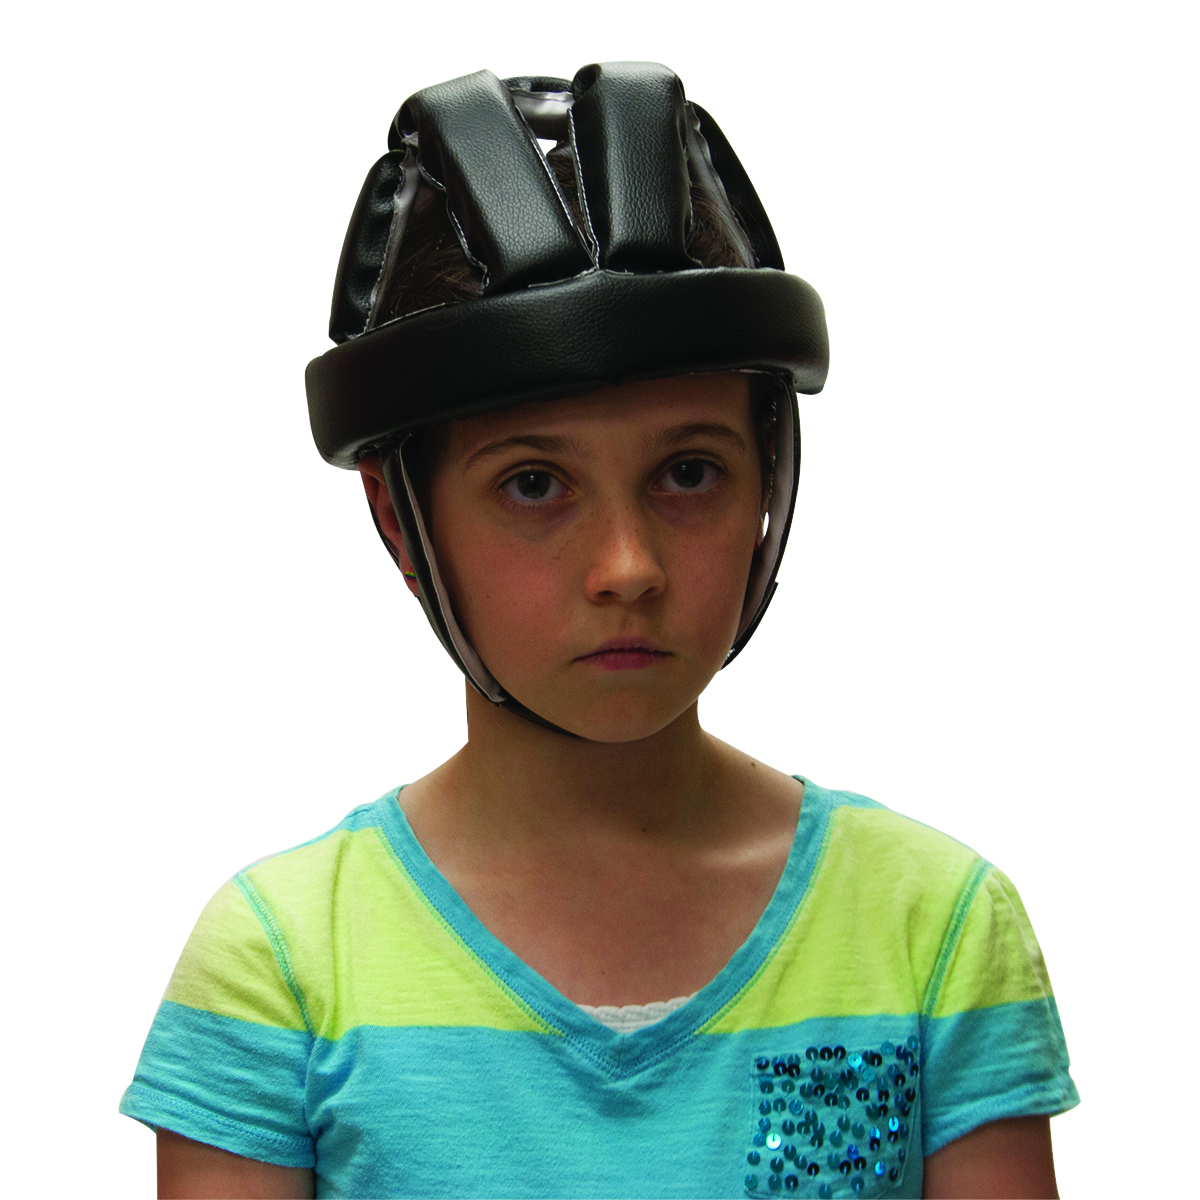 pediatric-head-protection.jpg